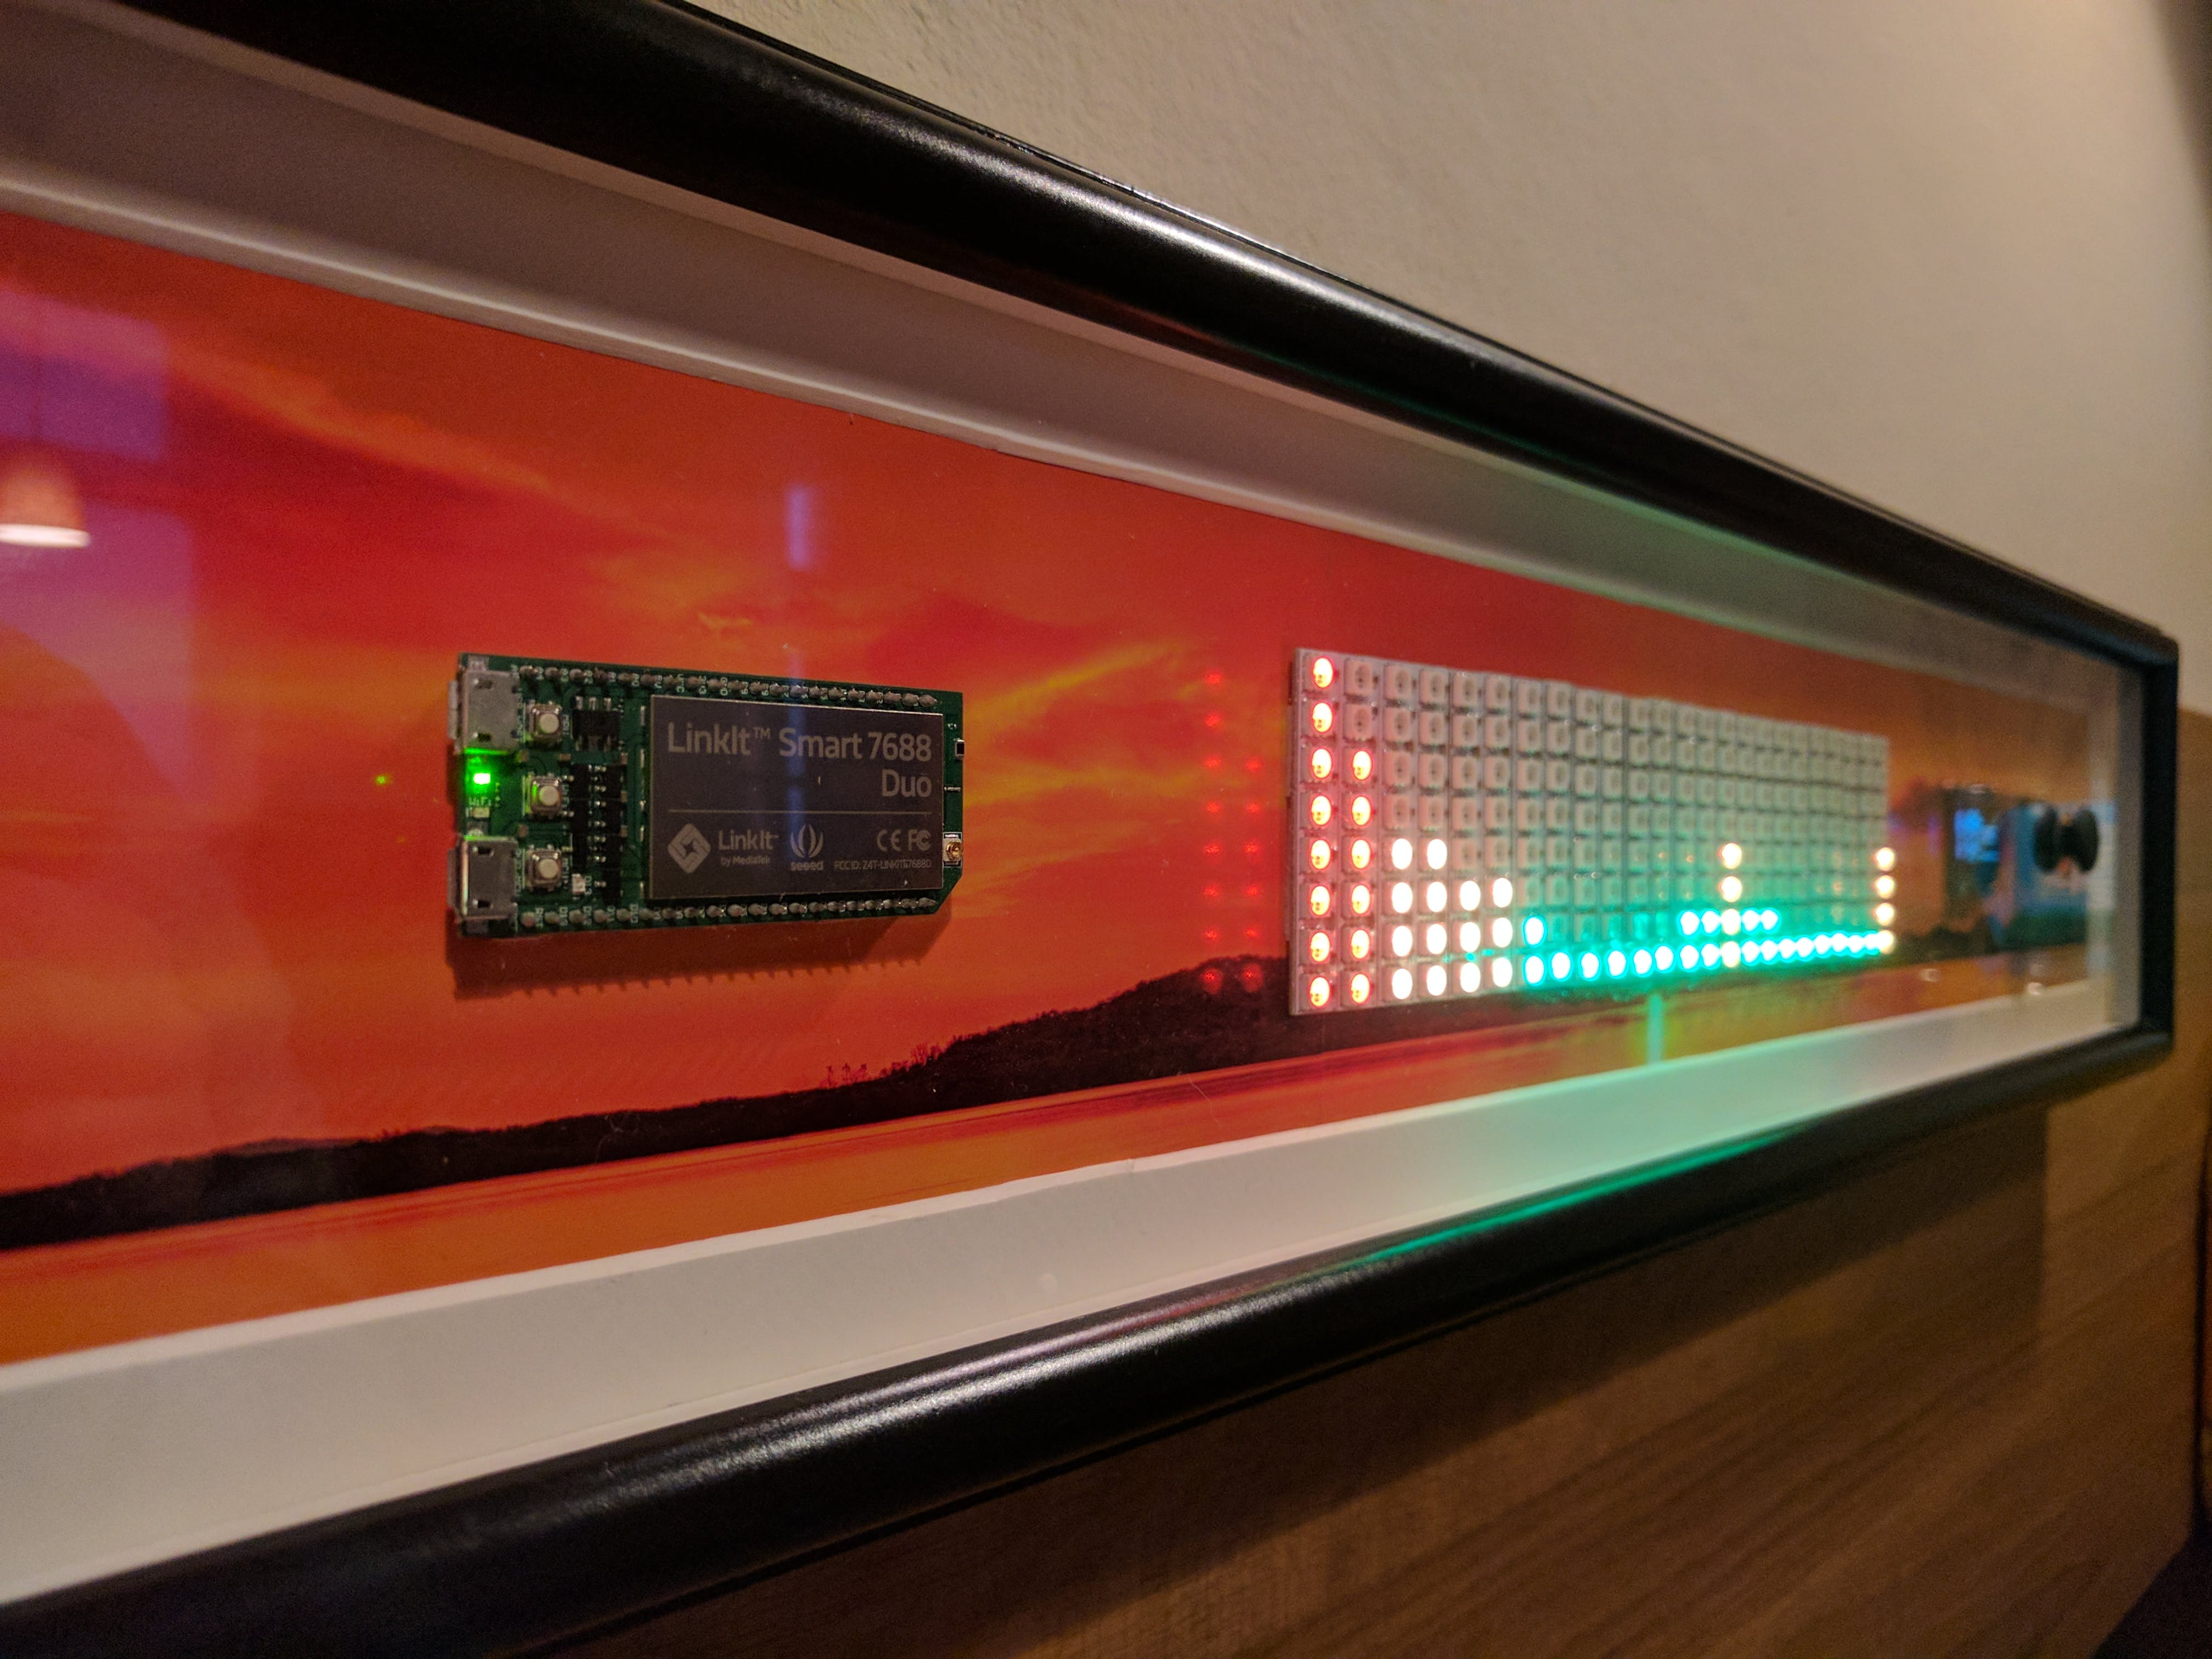 NeoPixel LED panel made of 24 sticks with 8 LEDs each